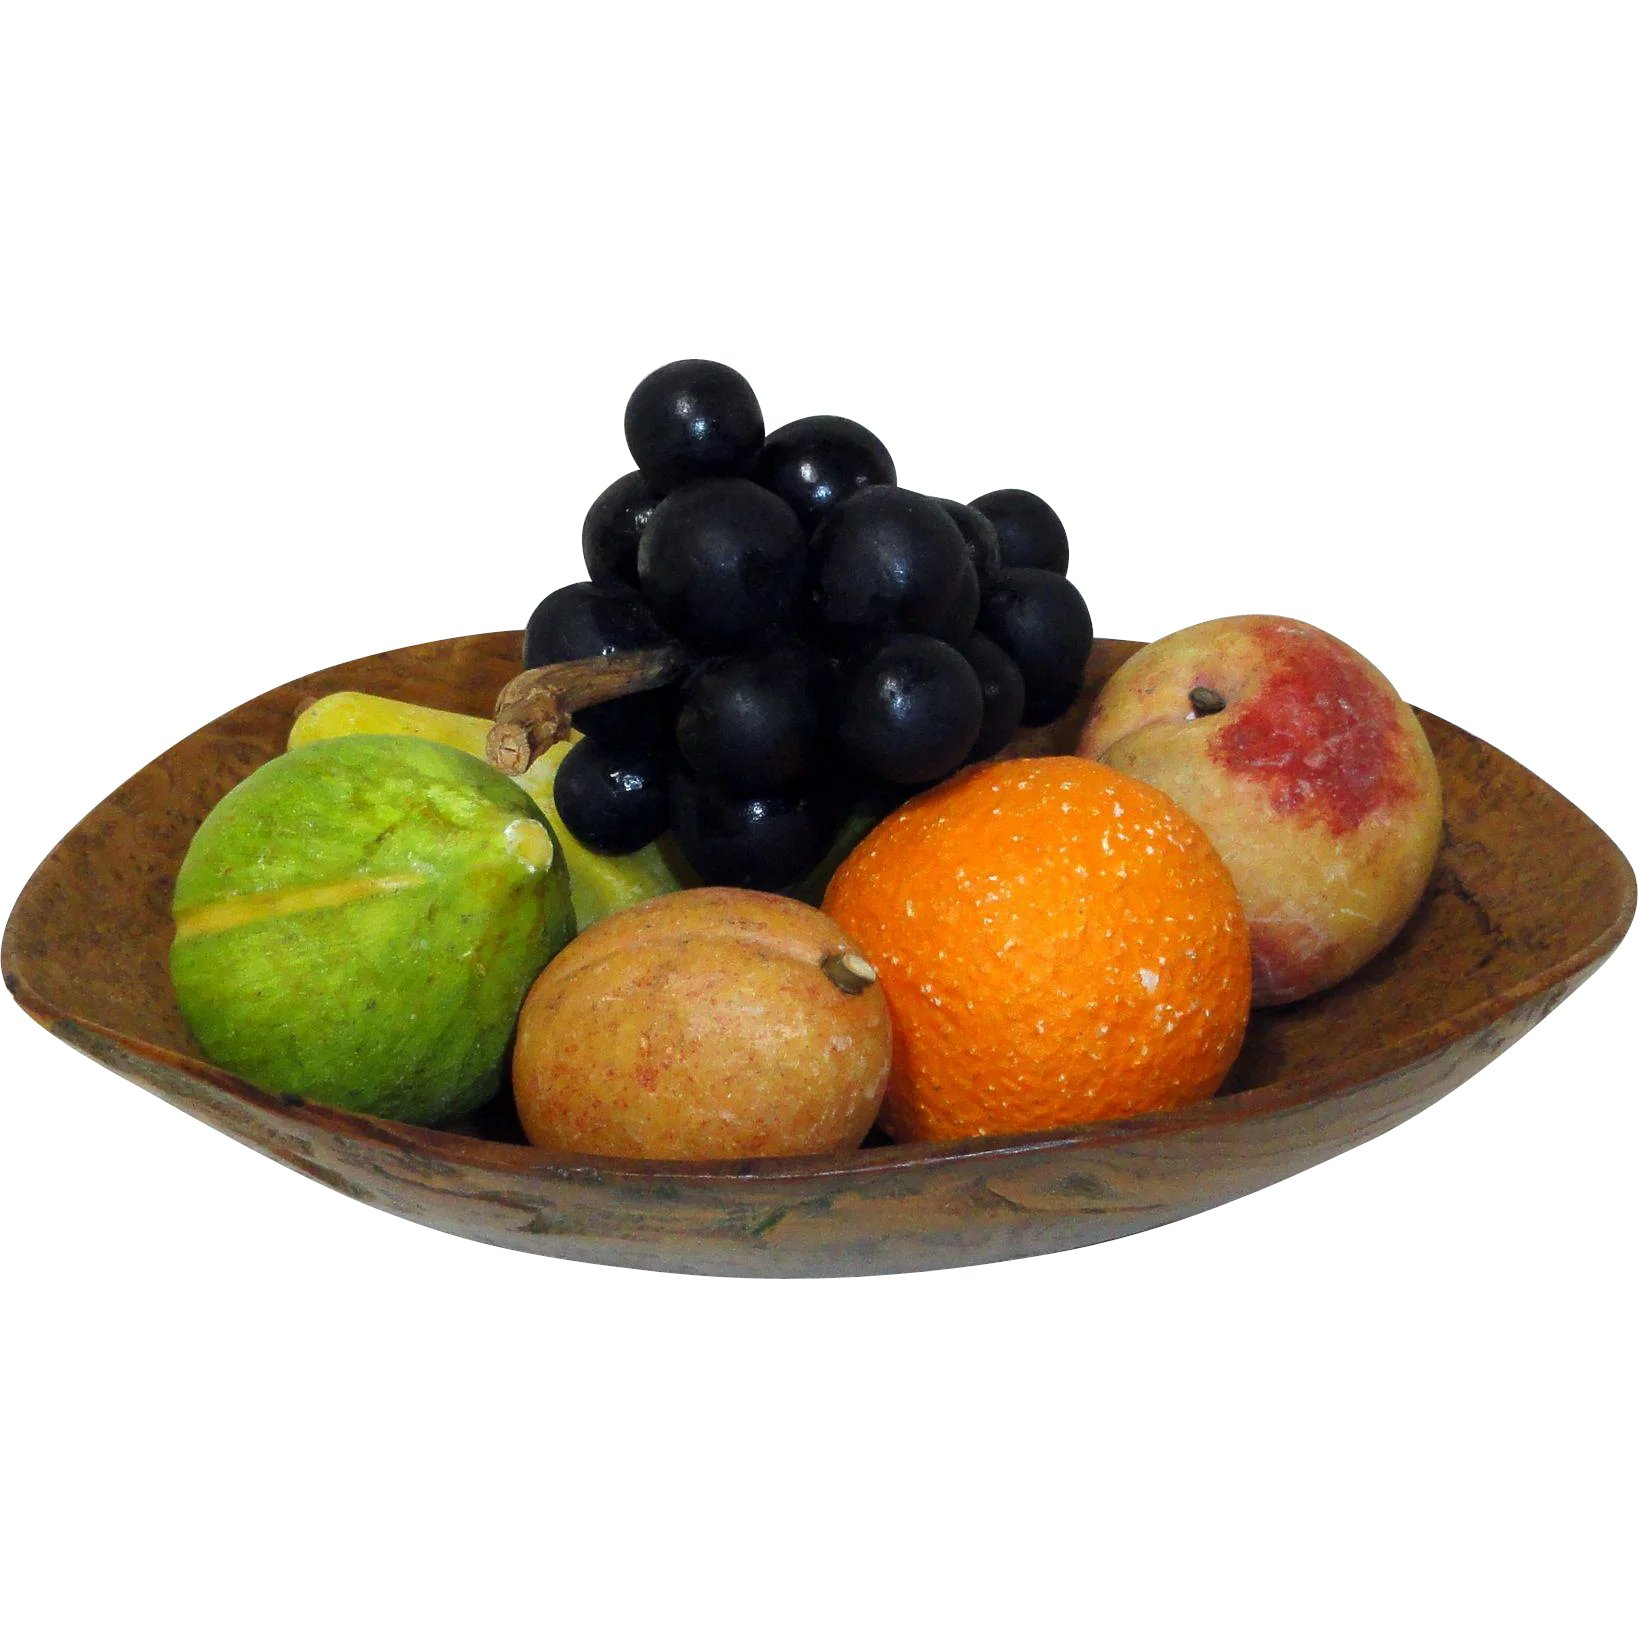 Boutique Orange Sarreguemines Collection Of 8 Pieces Of Stone Fruit 14 E King Ruby Lane